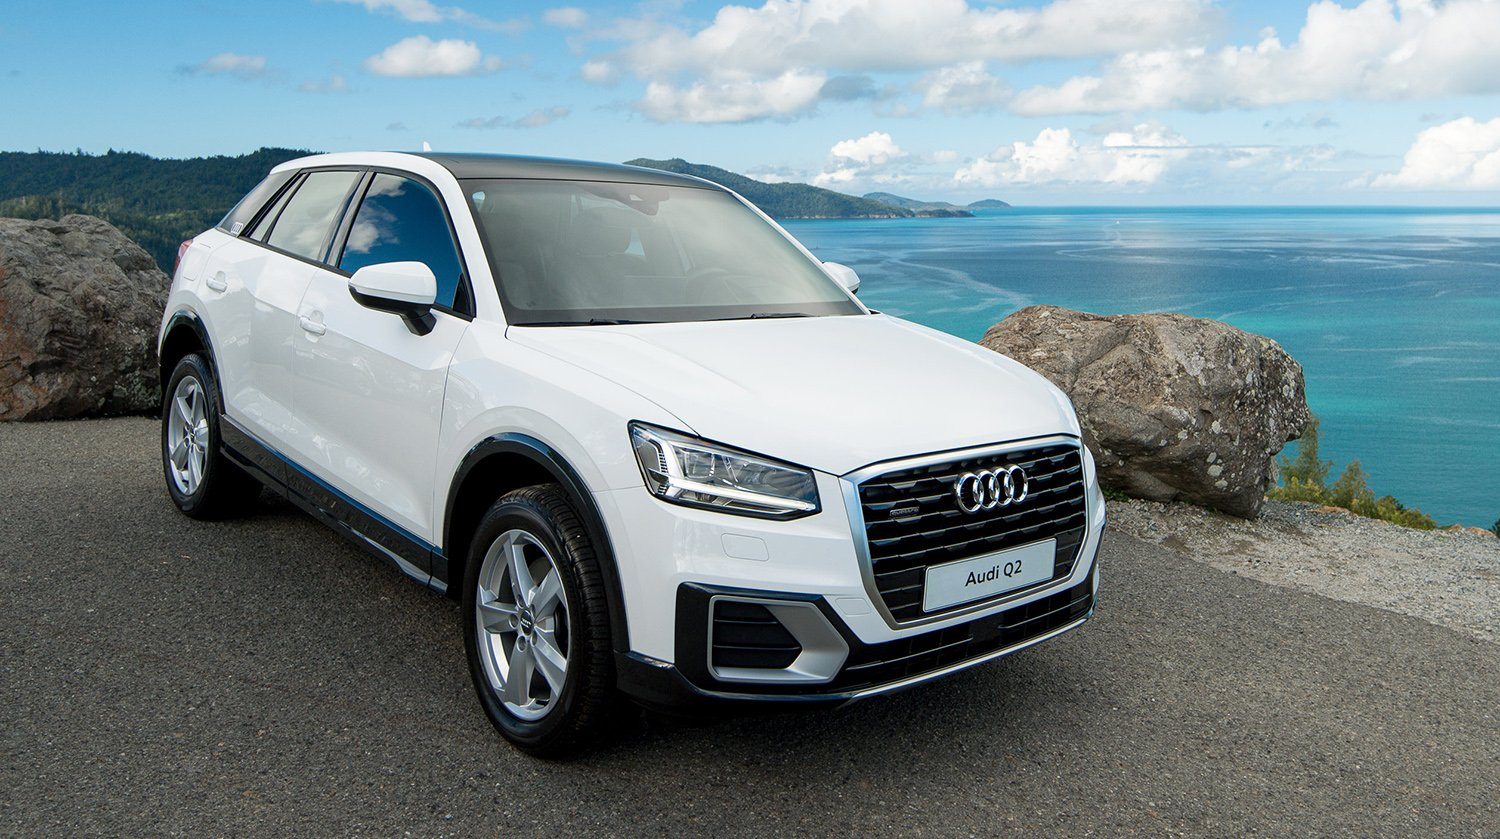 2017 audi q2 makes australian debut at hamilton island race week photos caradvice. Black Bedroom Furniture Sets. Home Design Ideas